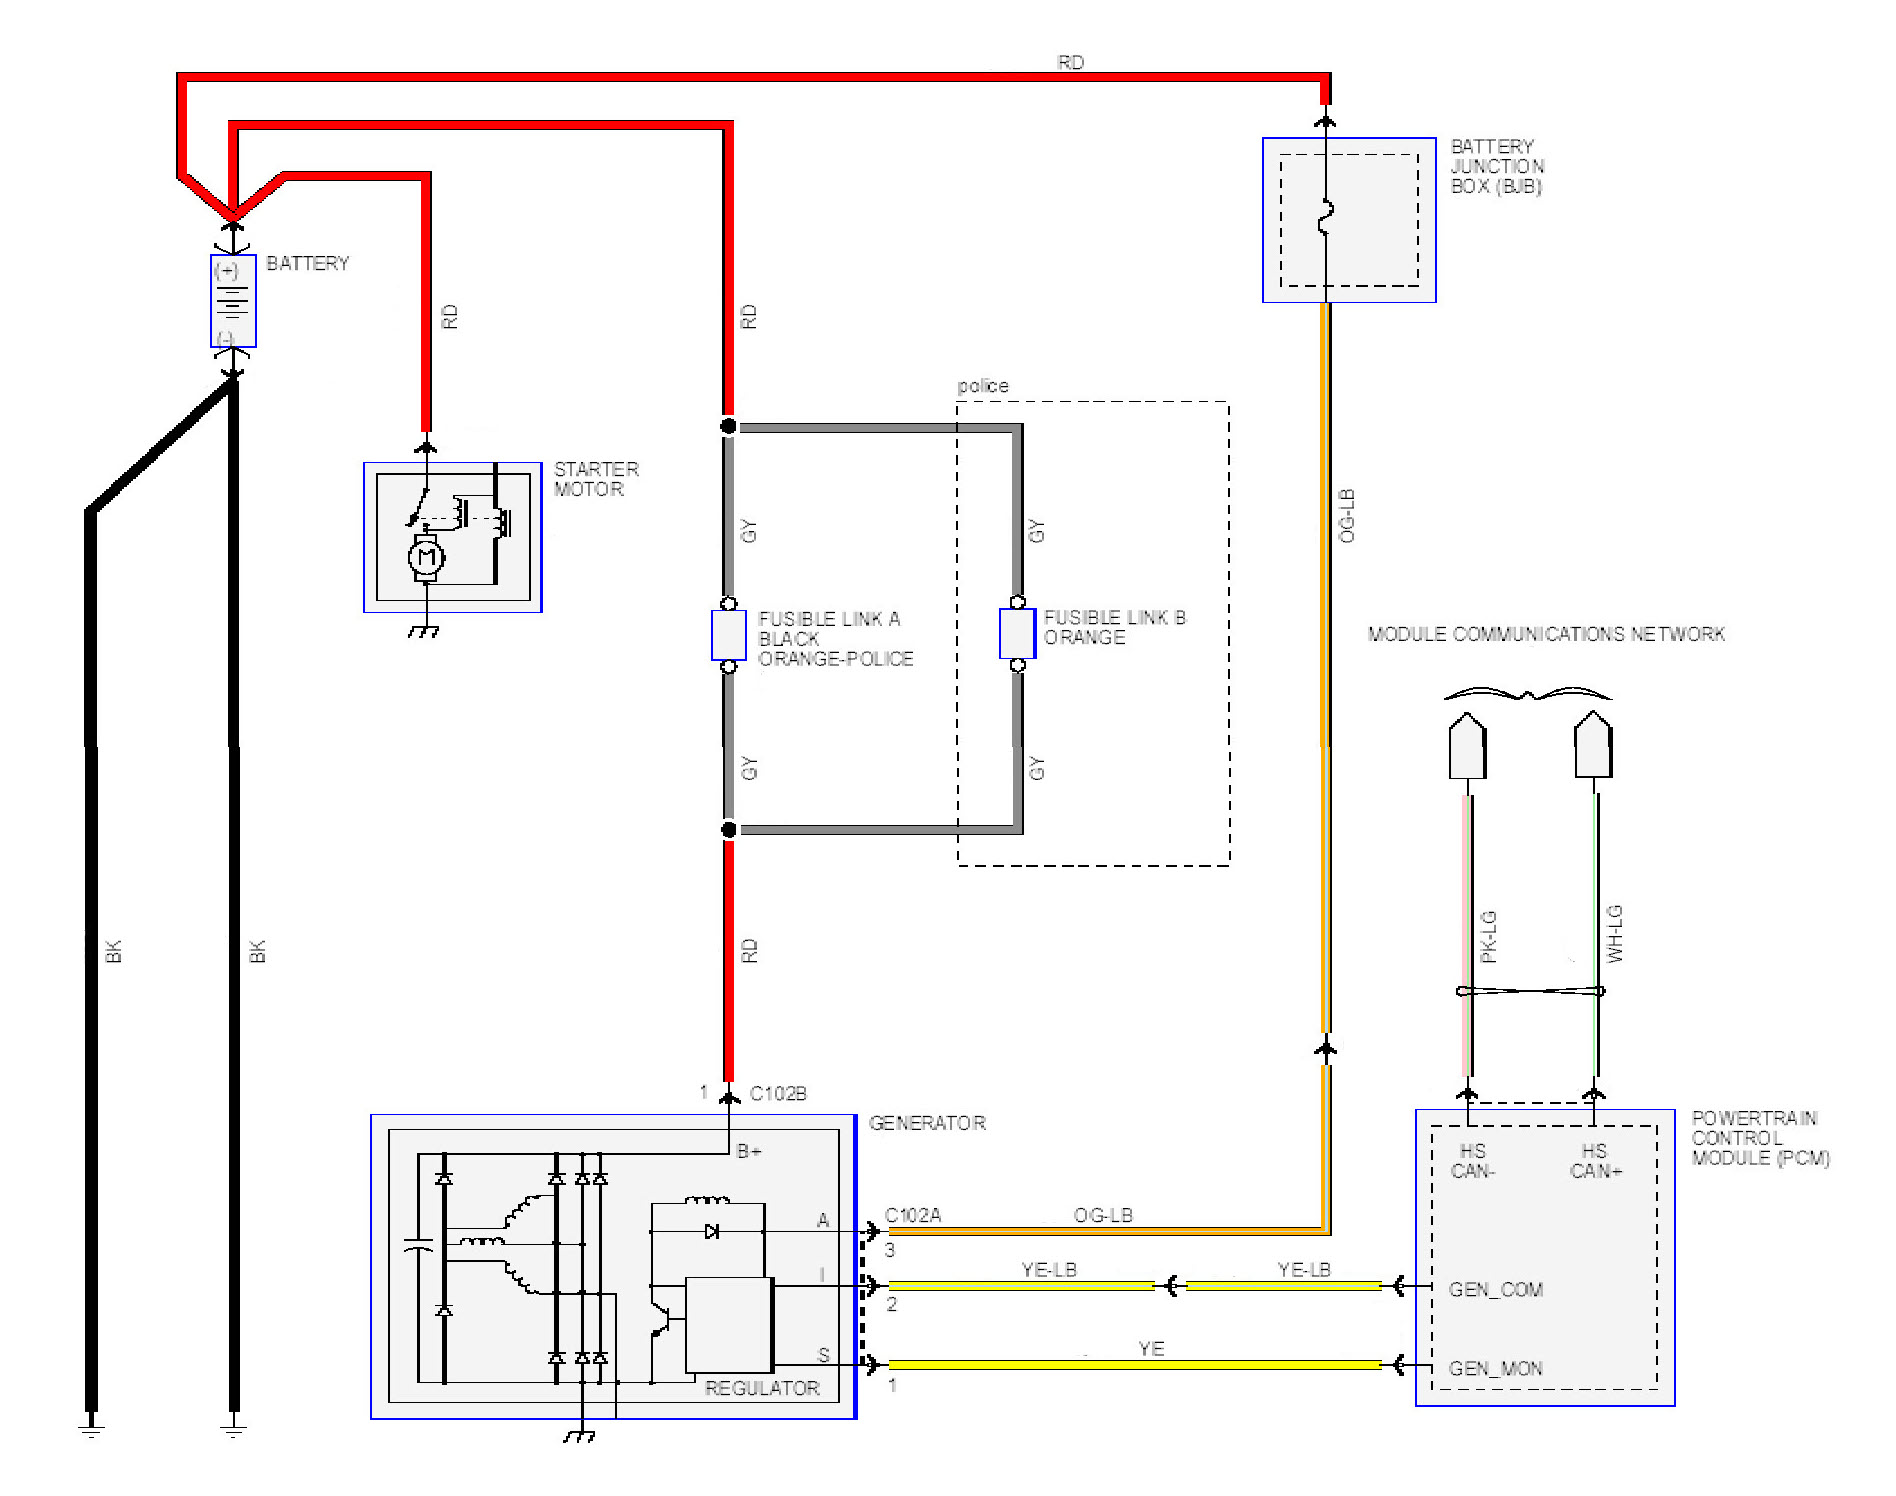 10crownviccharge ford crown victoria alternator wiring diagrams 1999 F150 Radio Wiring Diagram at panicattacktreatment.co